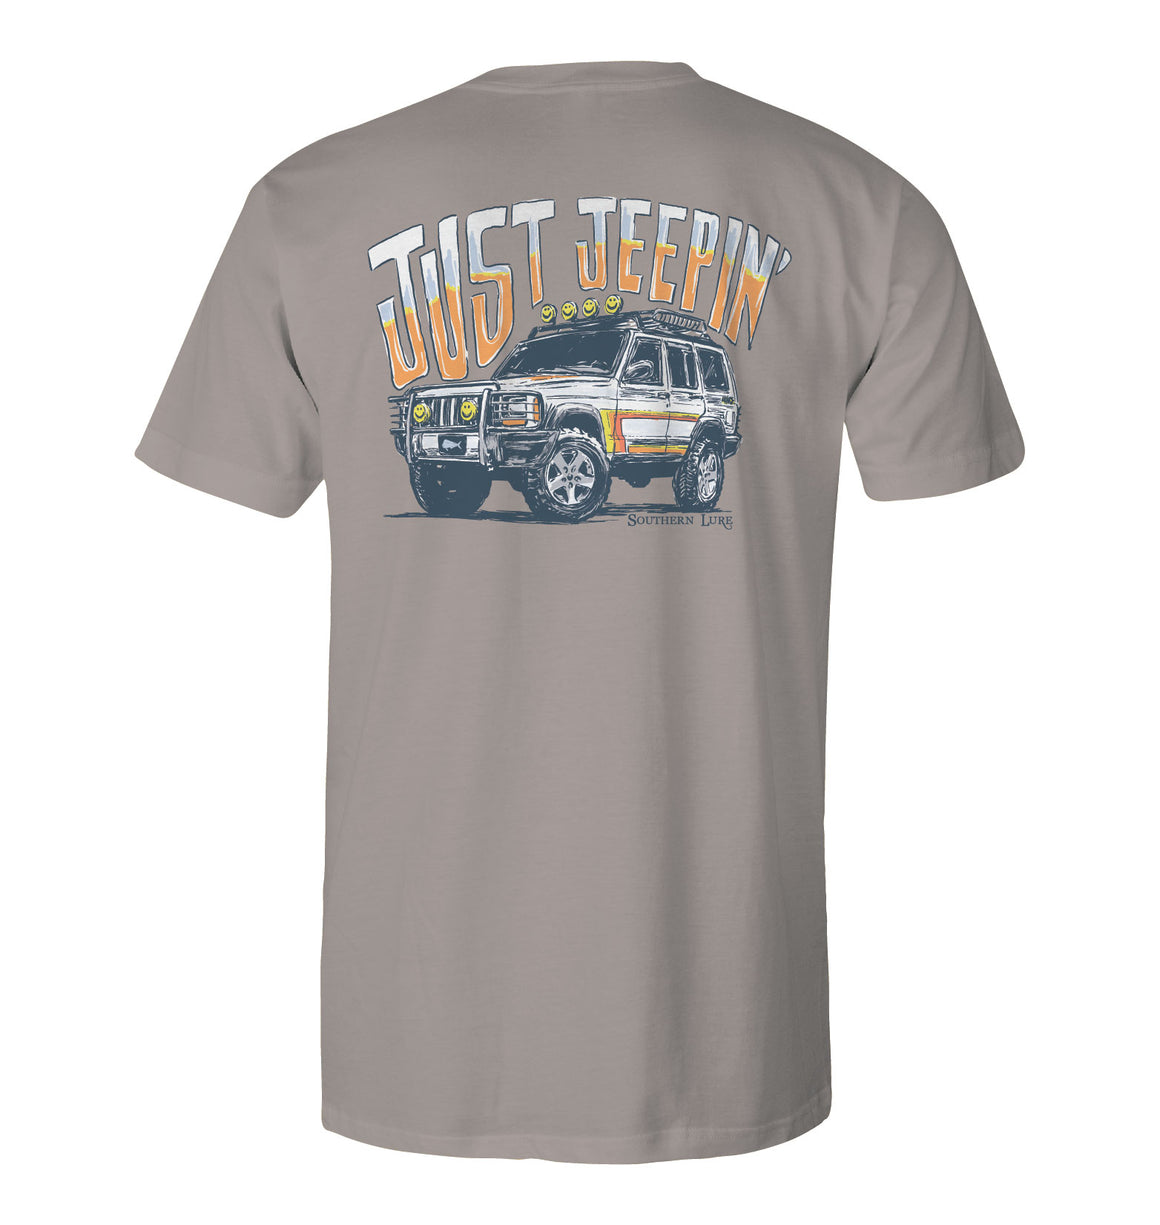 Youth Short Sleeve Tee - Jeepin - Granite